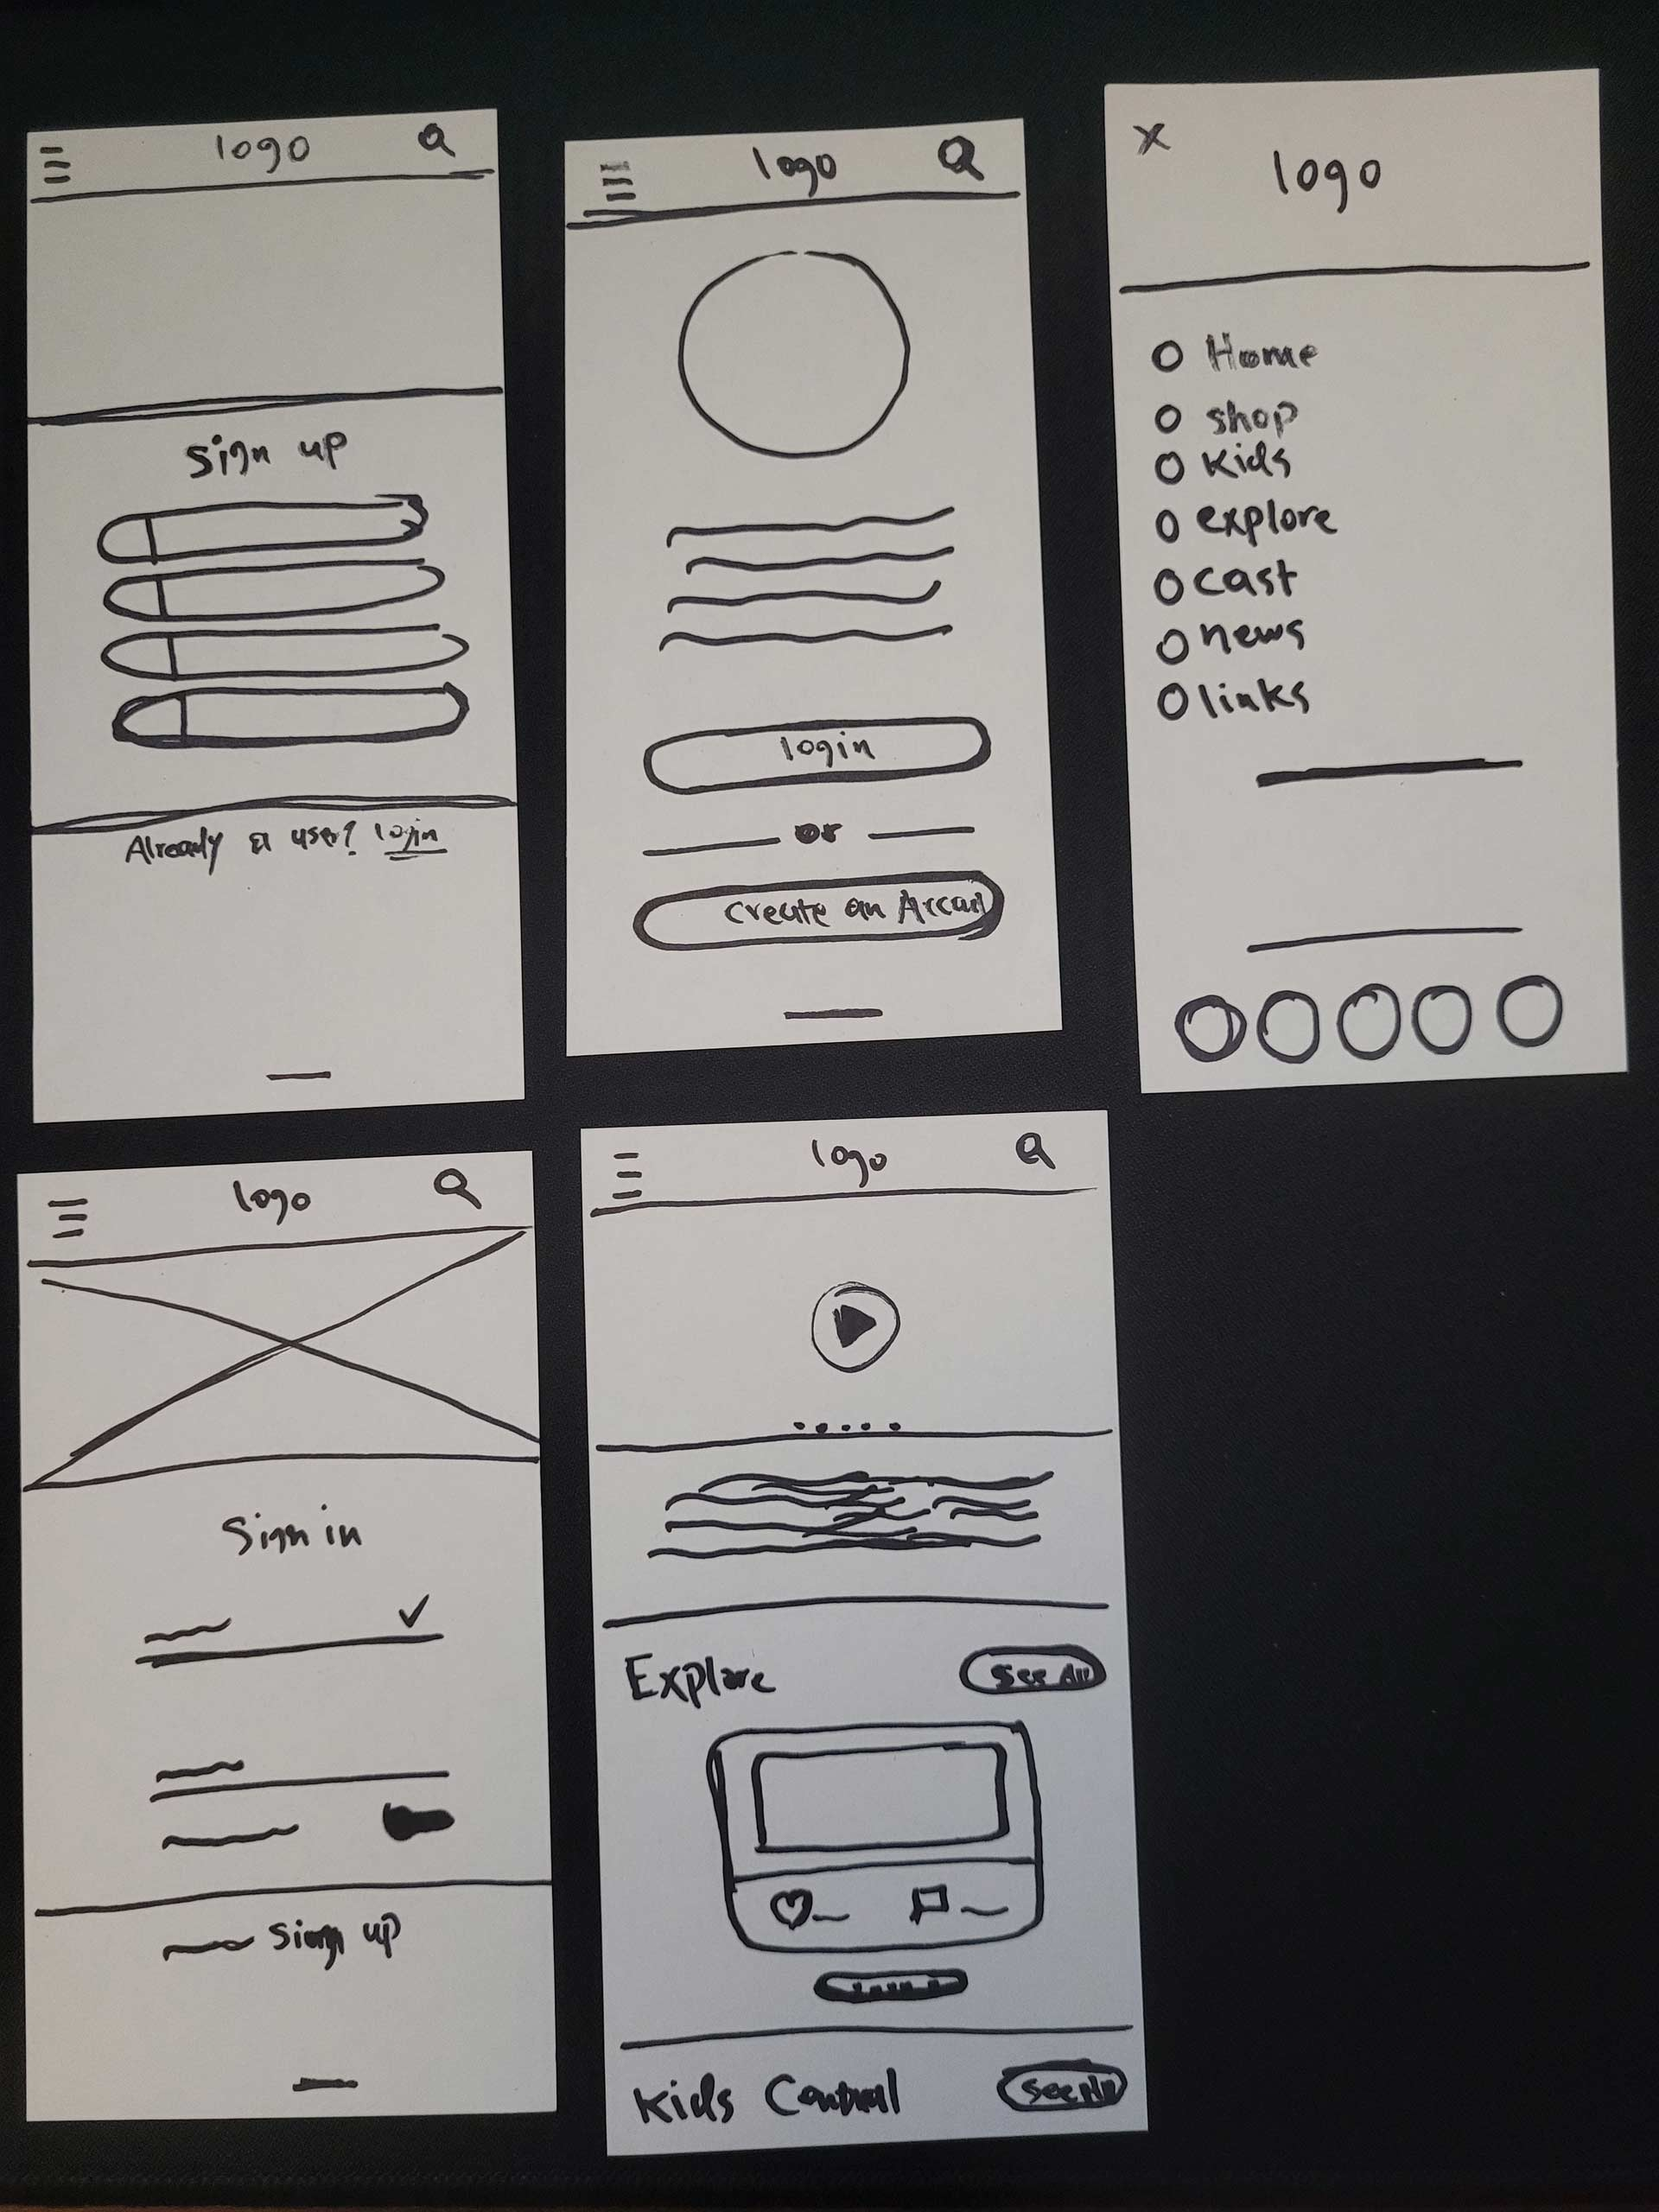 paper prototypes of an app